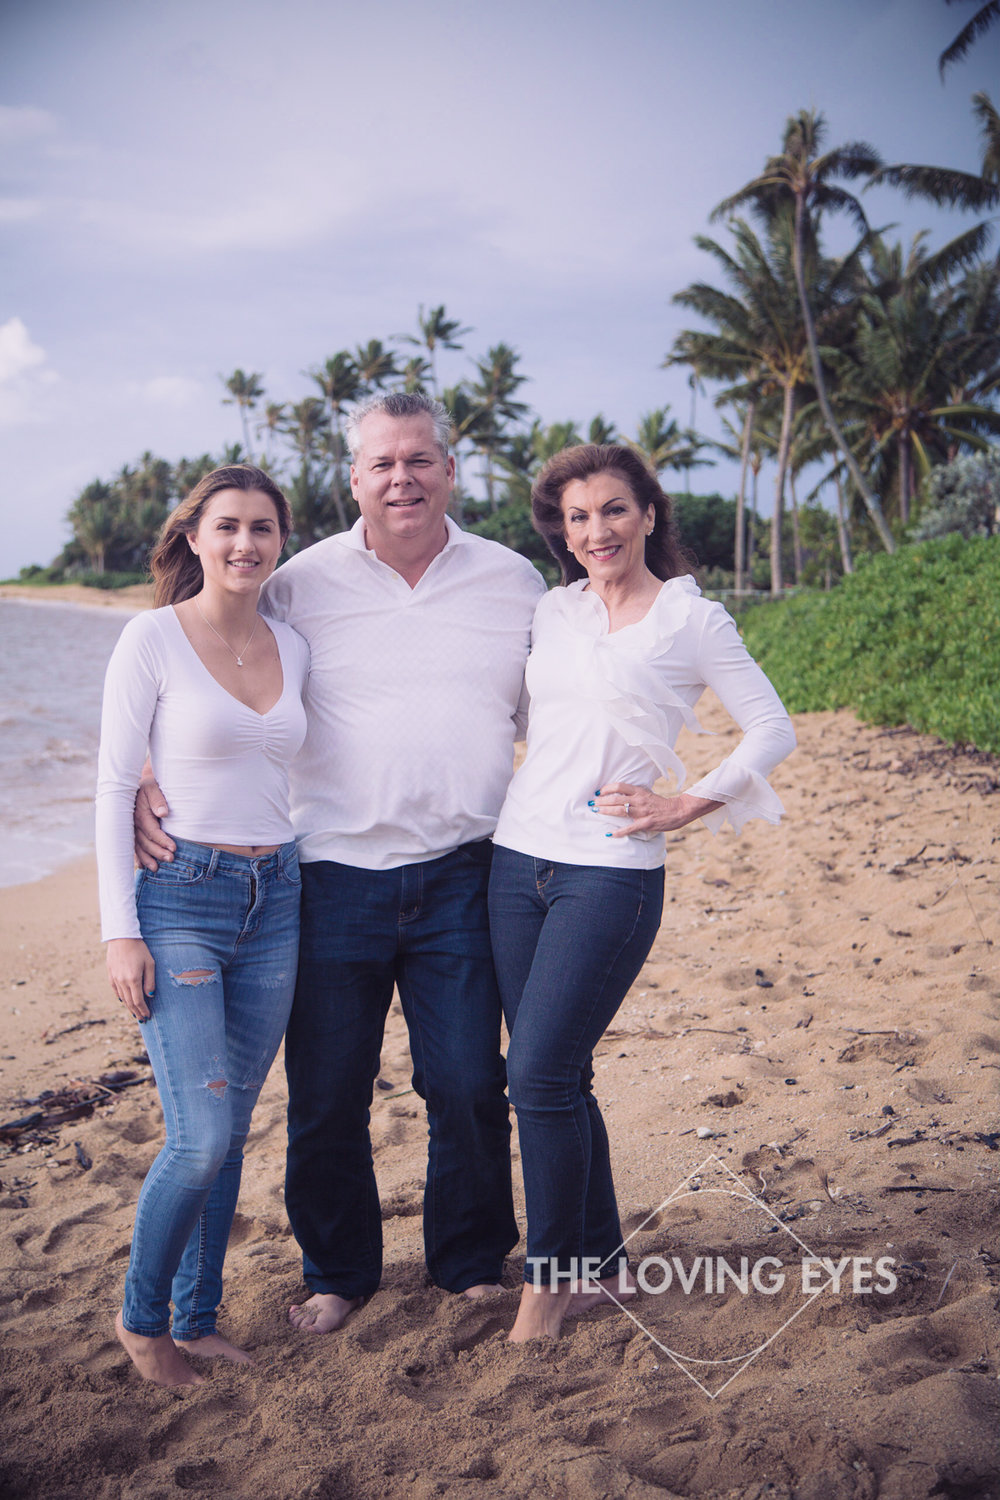 Family portrait on Kahala beach in Hawaii